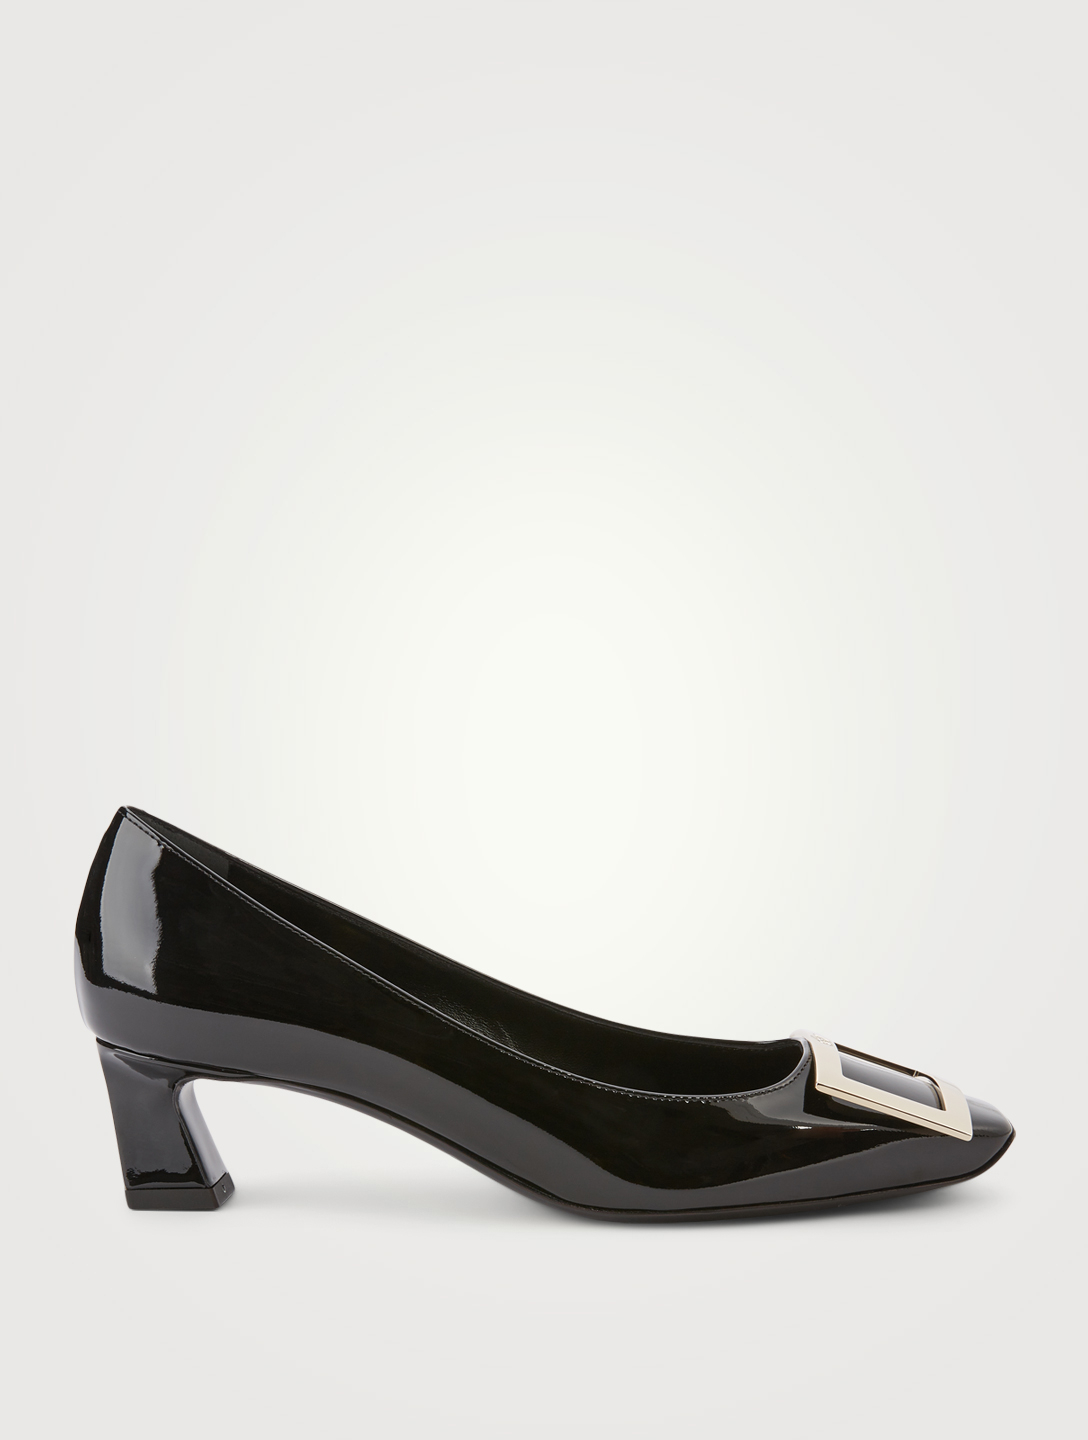 ROGER VIVIER Belle Vivier Trompette 45 Patent Leather Pumps Women's Black